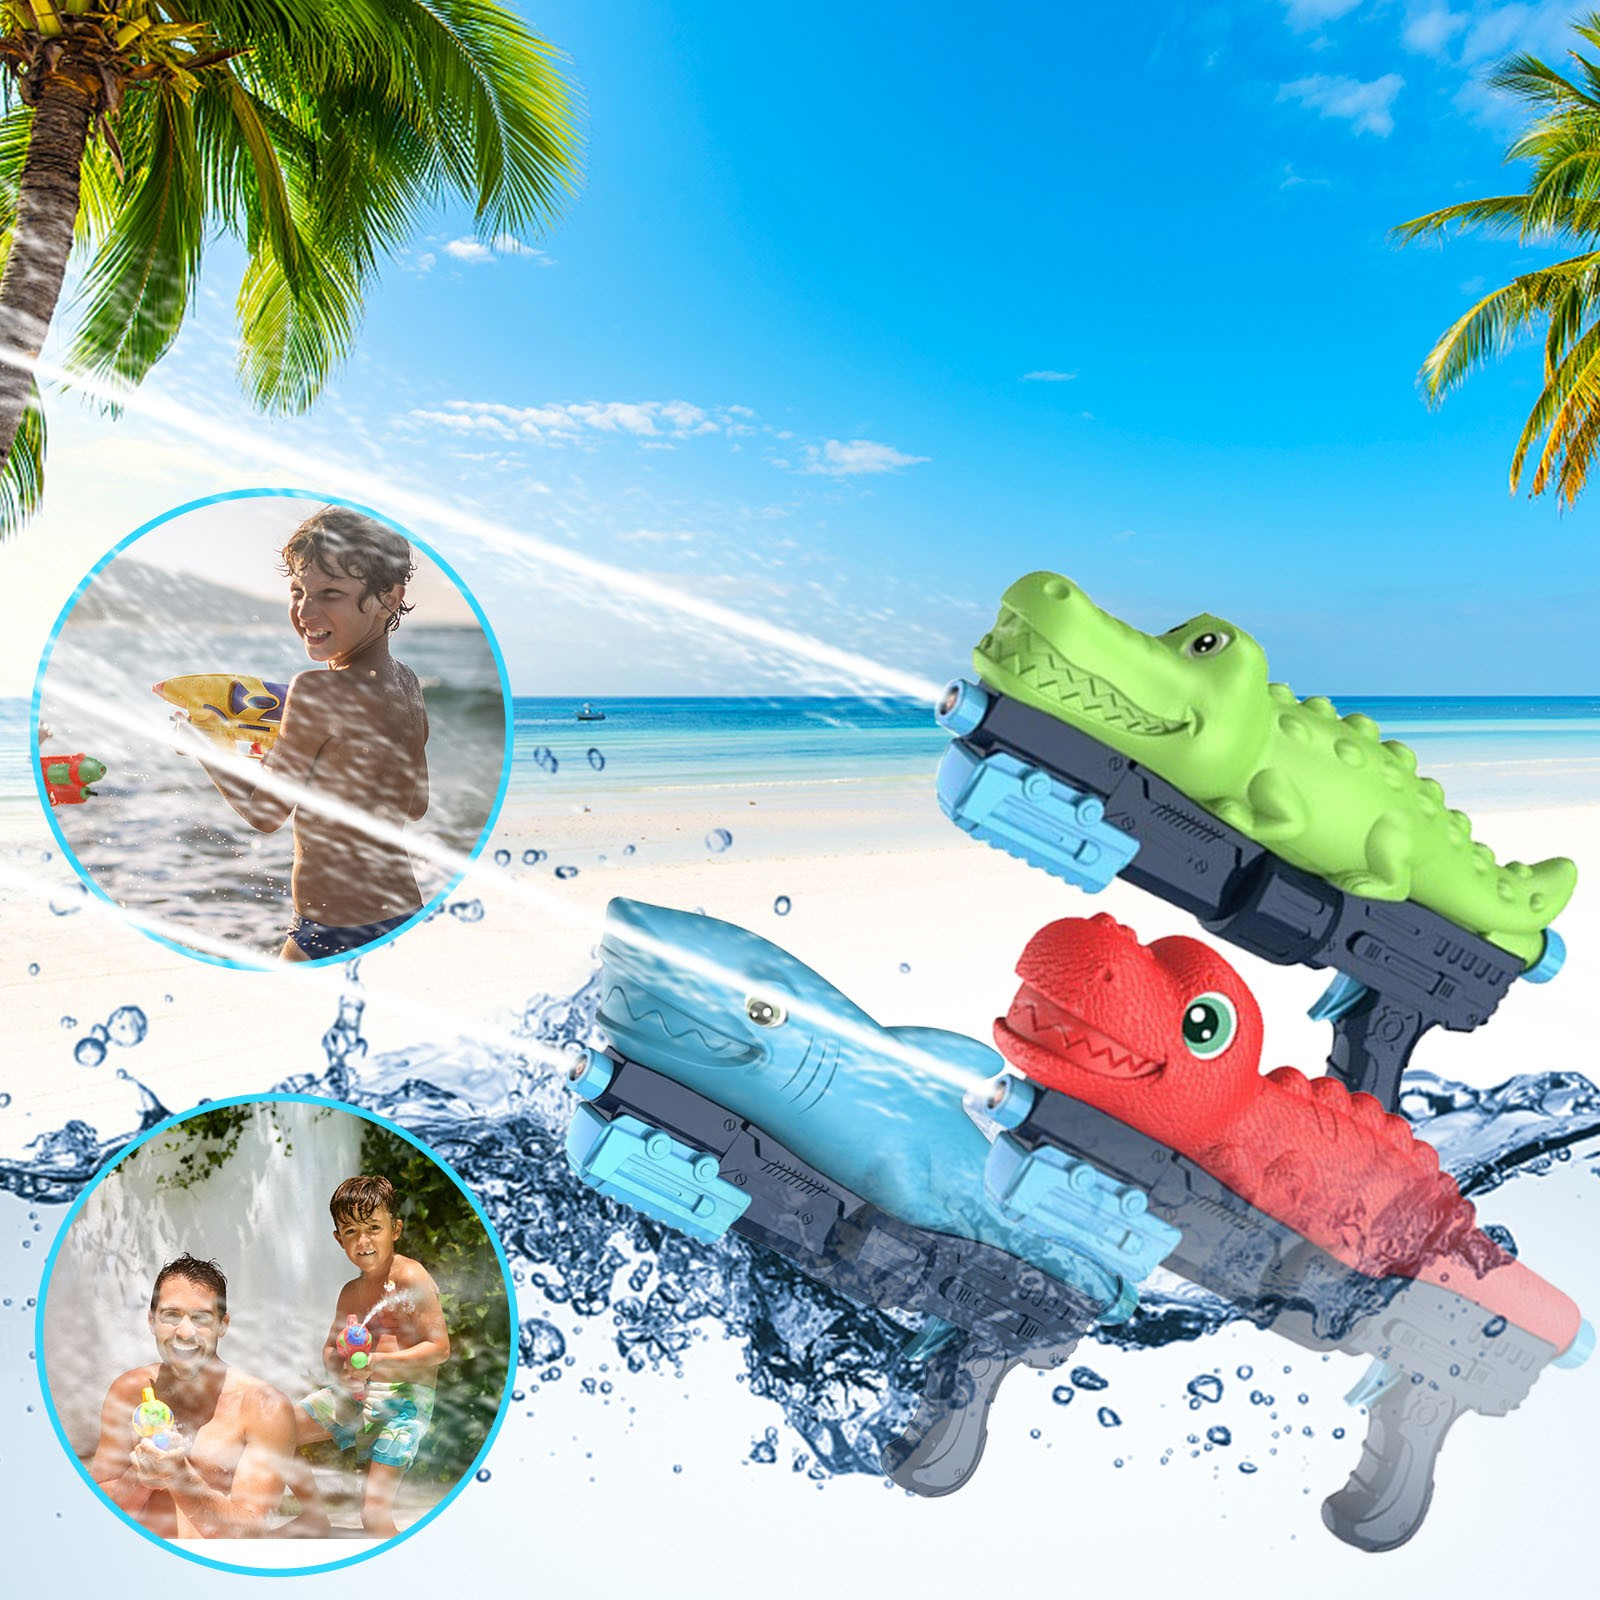 Children's Indoor And Outdoor Water Guns War And Water Sprayparty Toy Educational toys popit fidget toy поп ит антисресс